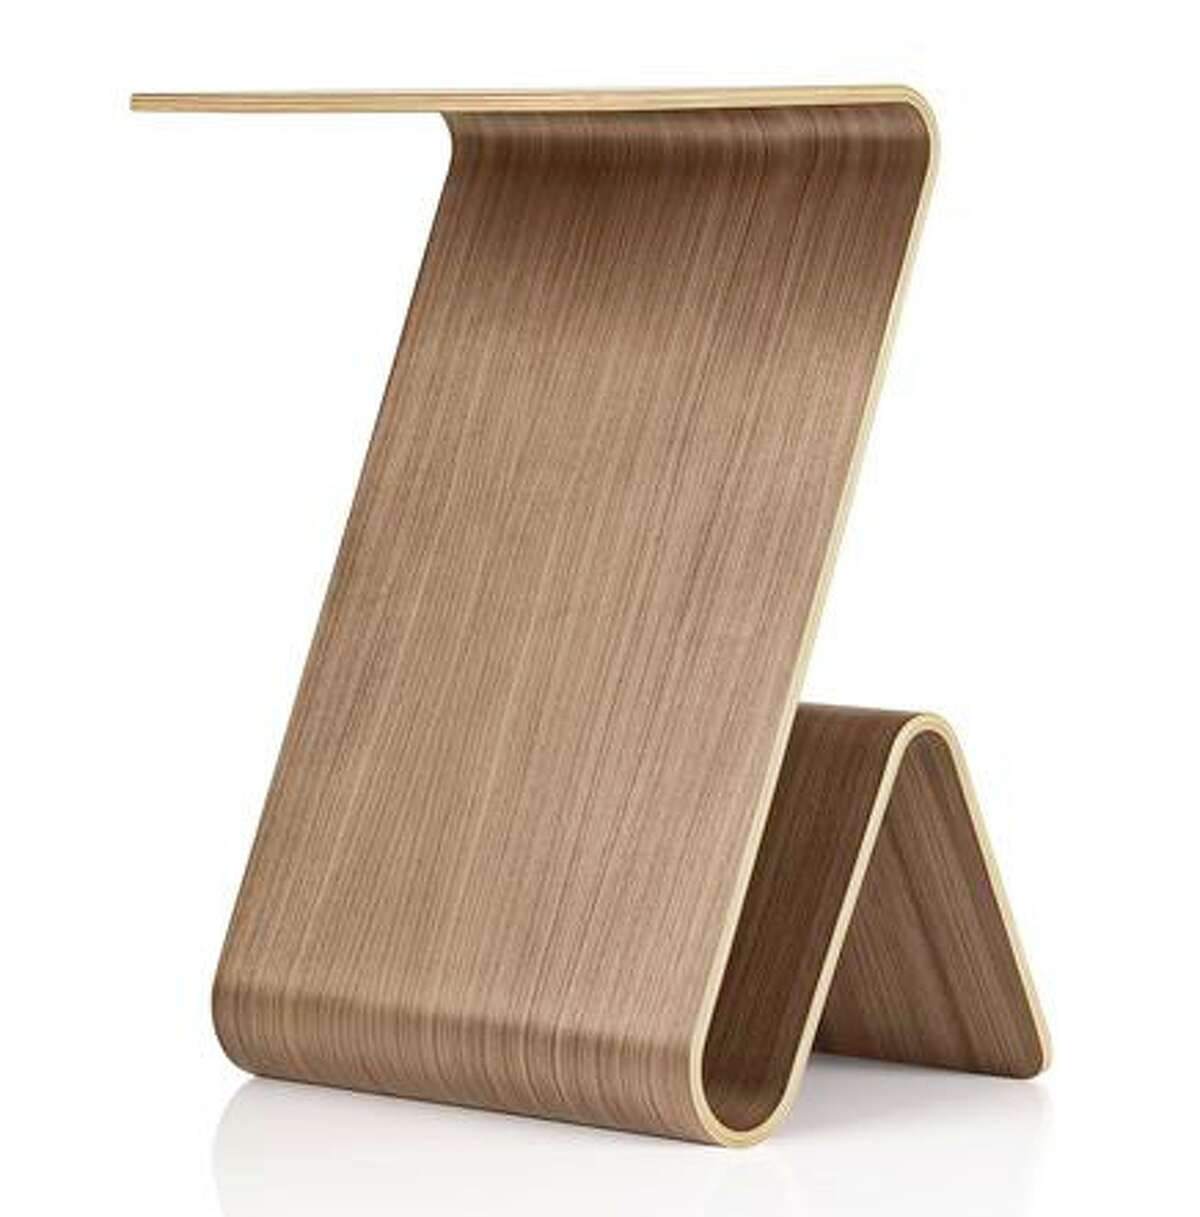 Made of durable molded plywood, the Cobra Table's unique form provides a higher table surface for working at sofa height, while also providing storage on its backside.